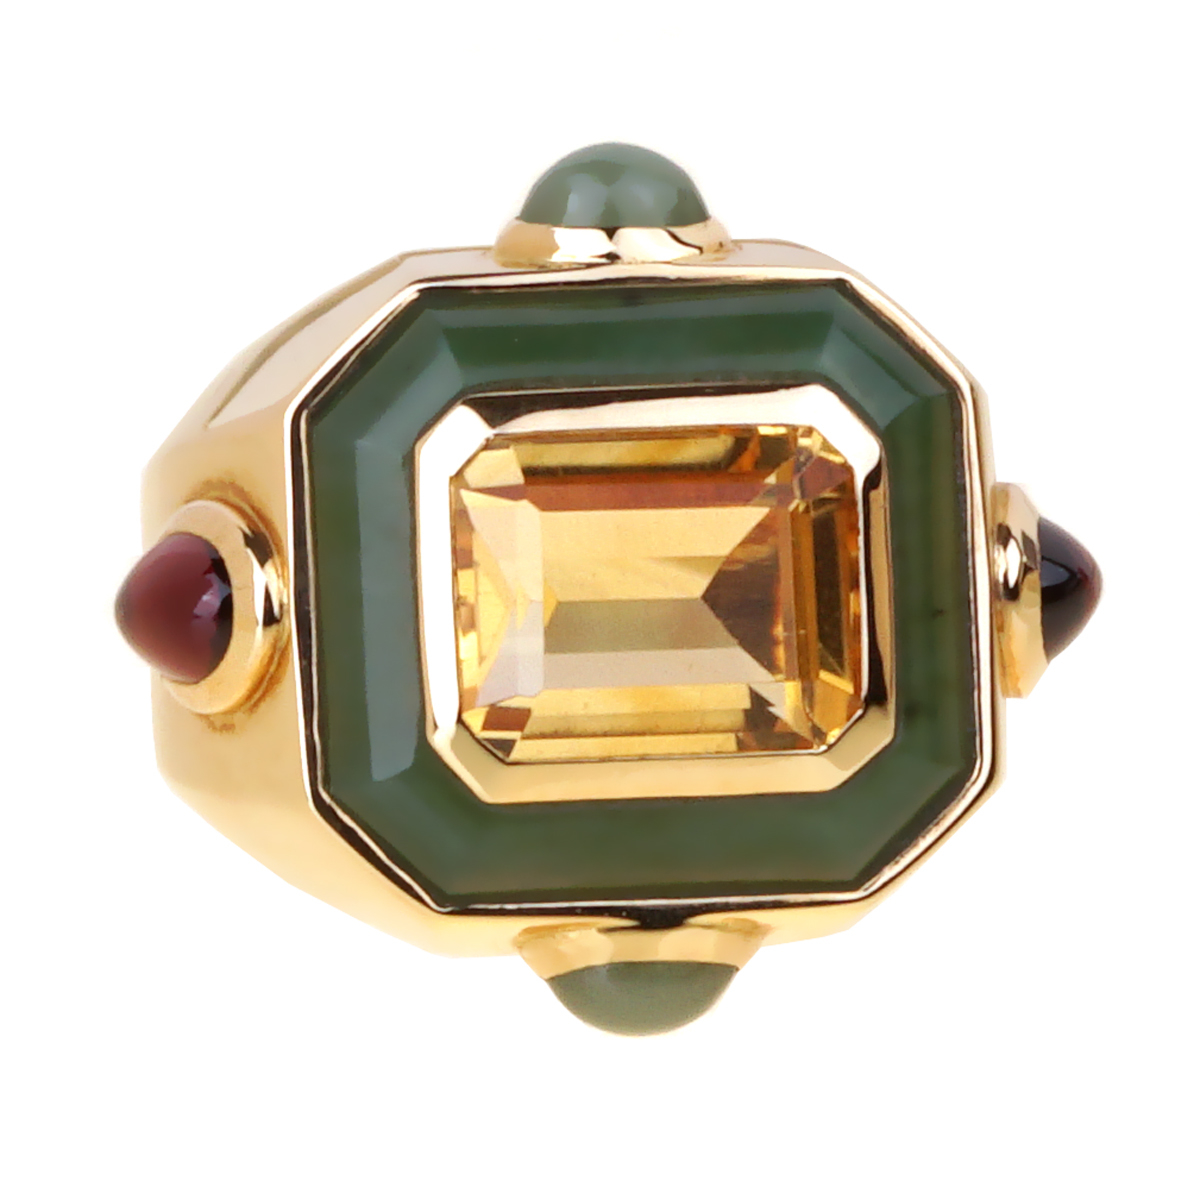 Chanel Citrine Jade Gold Cocktail Ring - Chanel Jewelry